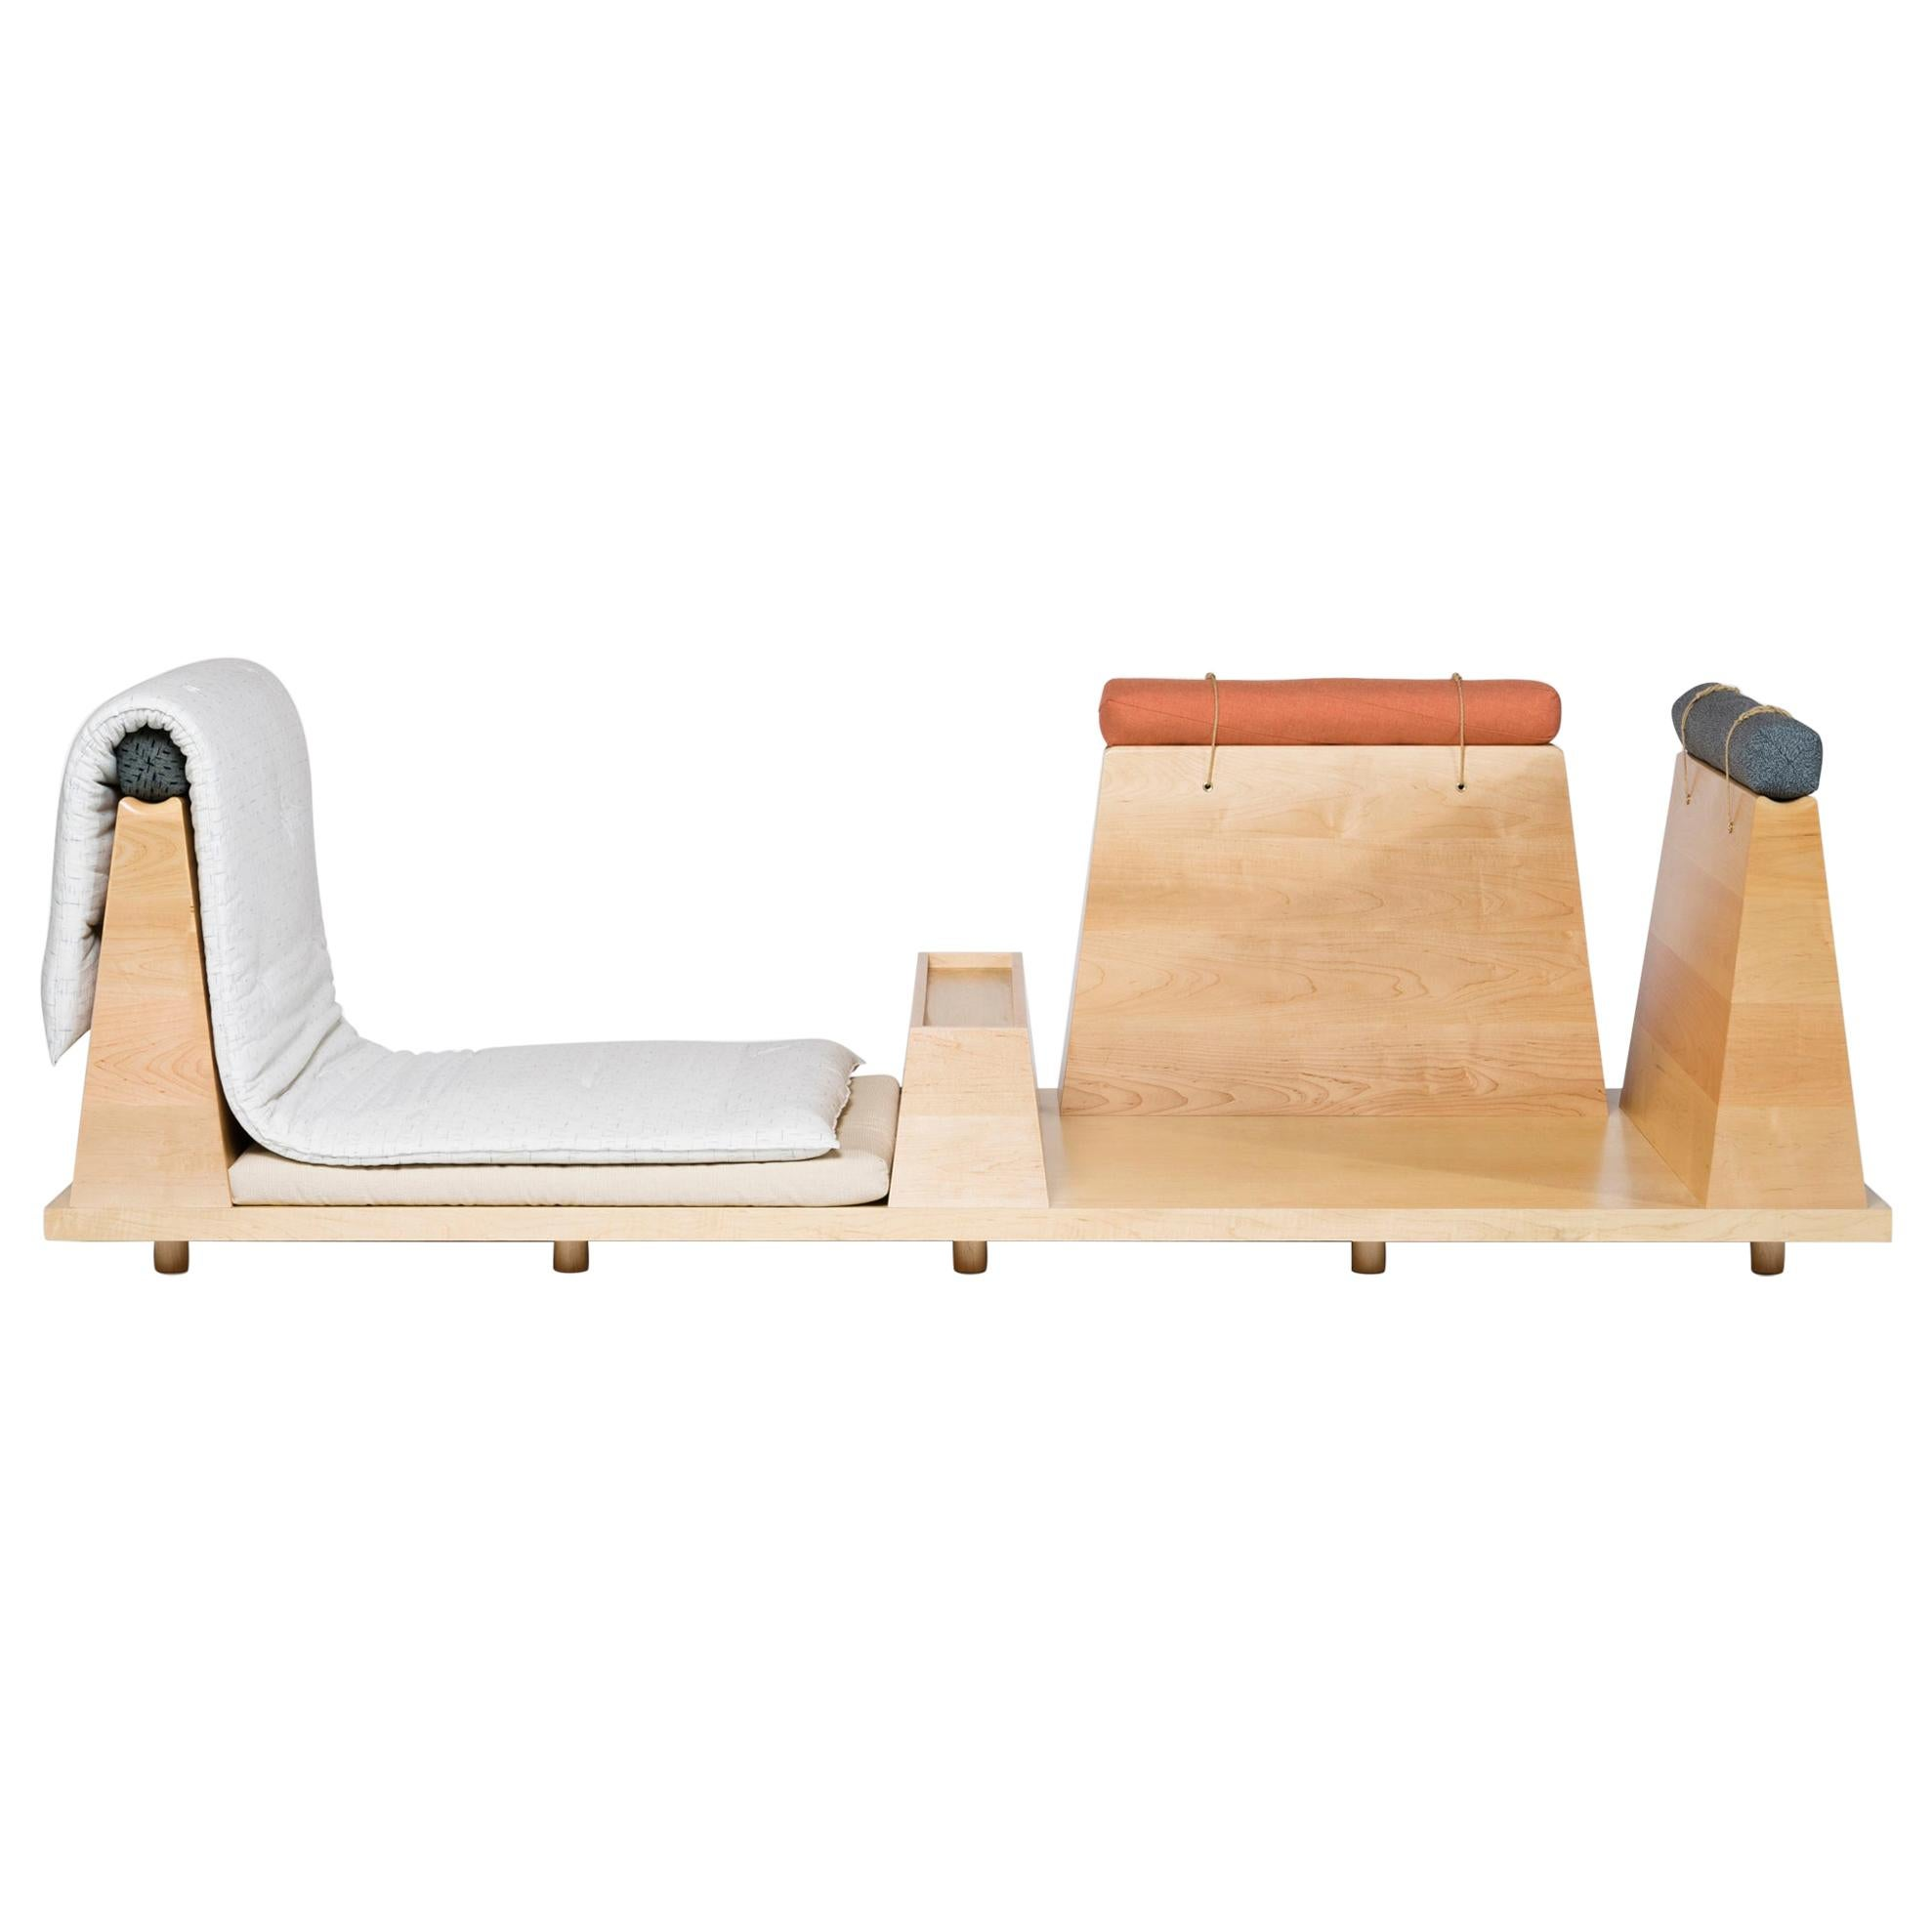 Zabuton Sofa, Handmade Japanese Futon on Modular Maple Frame, Kvadrat